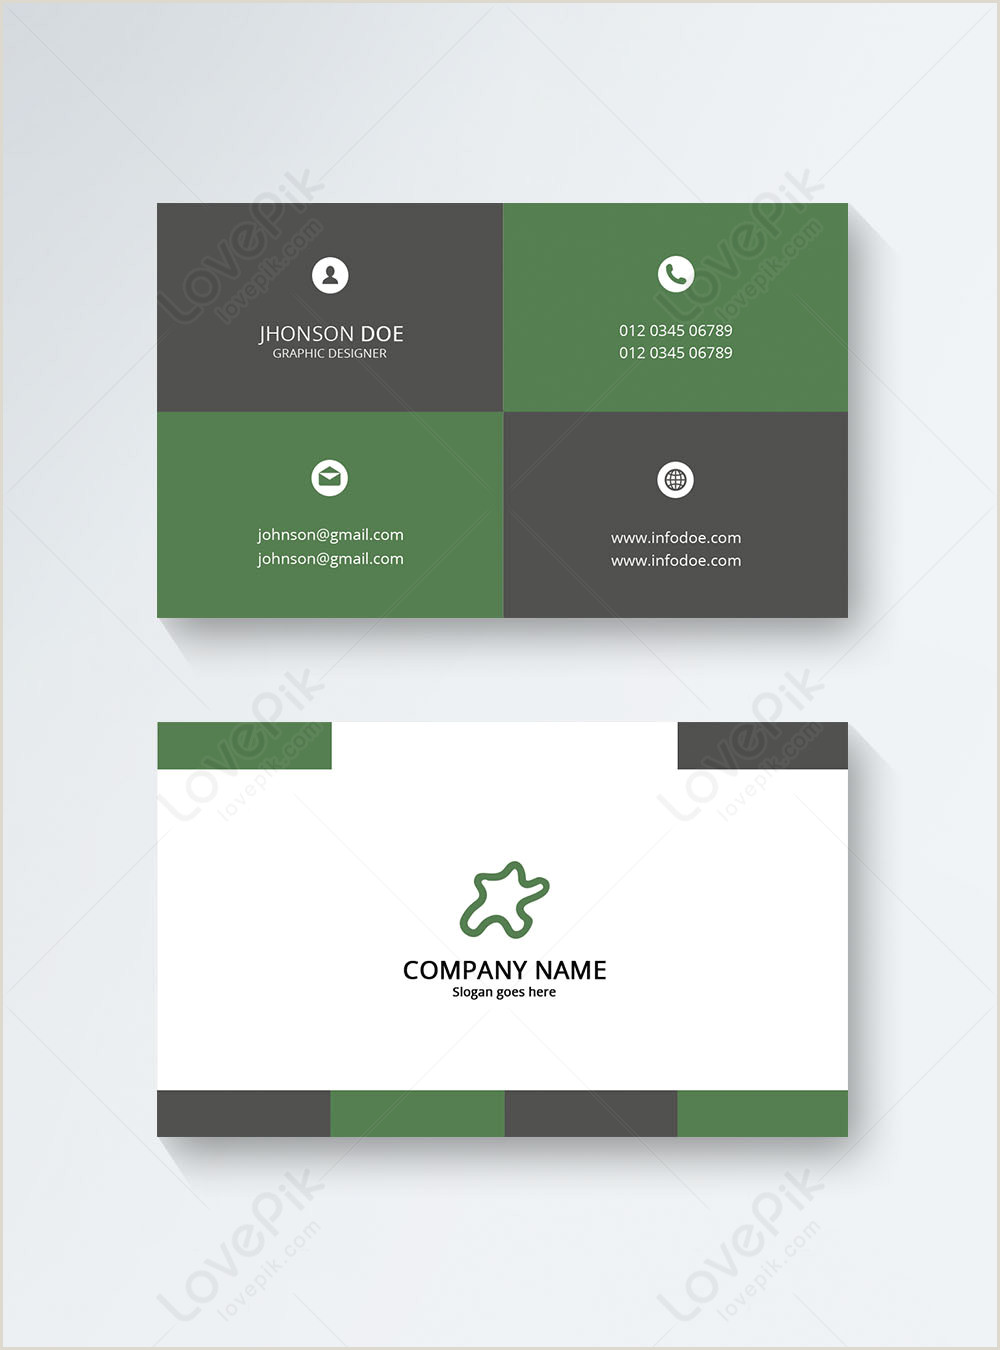 Modern Simple Business Cards Modern Business Card Template Image Picture Free